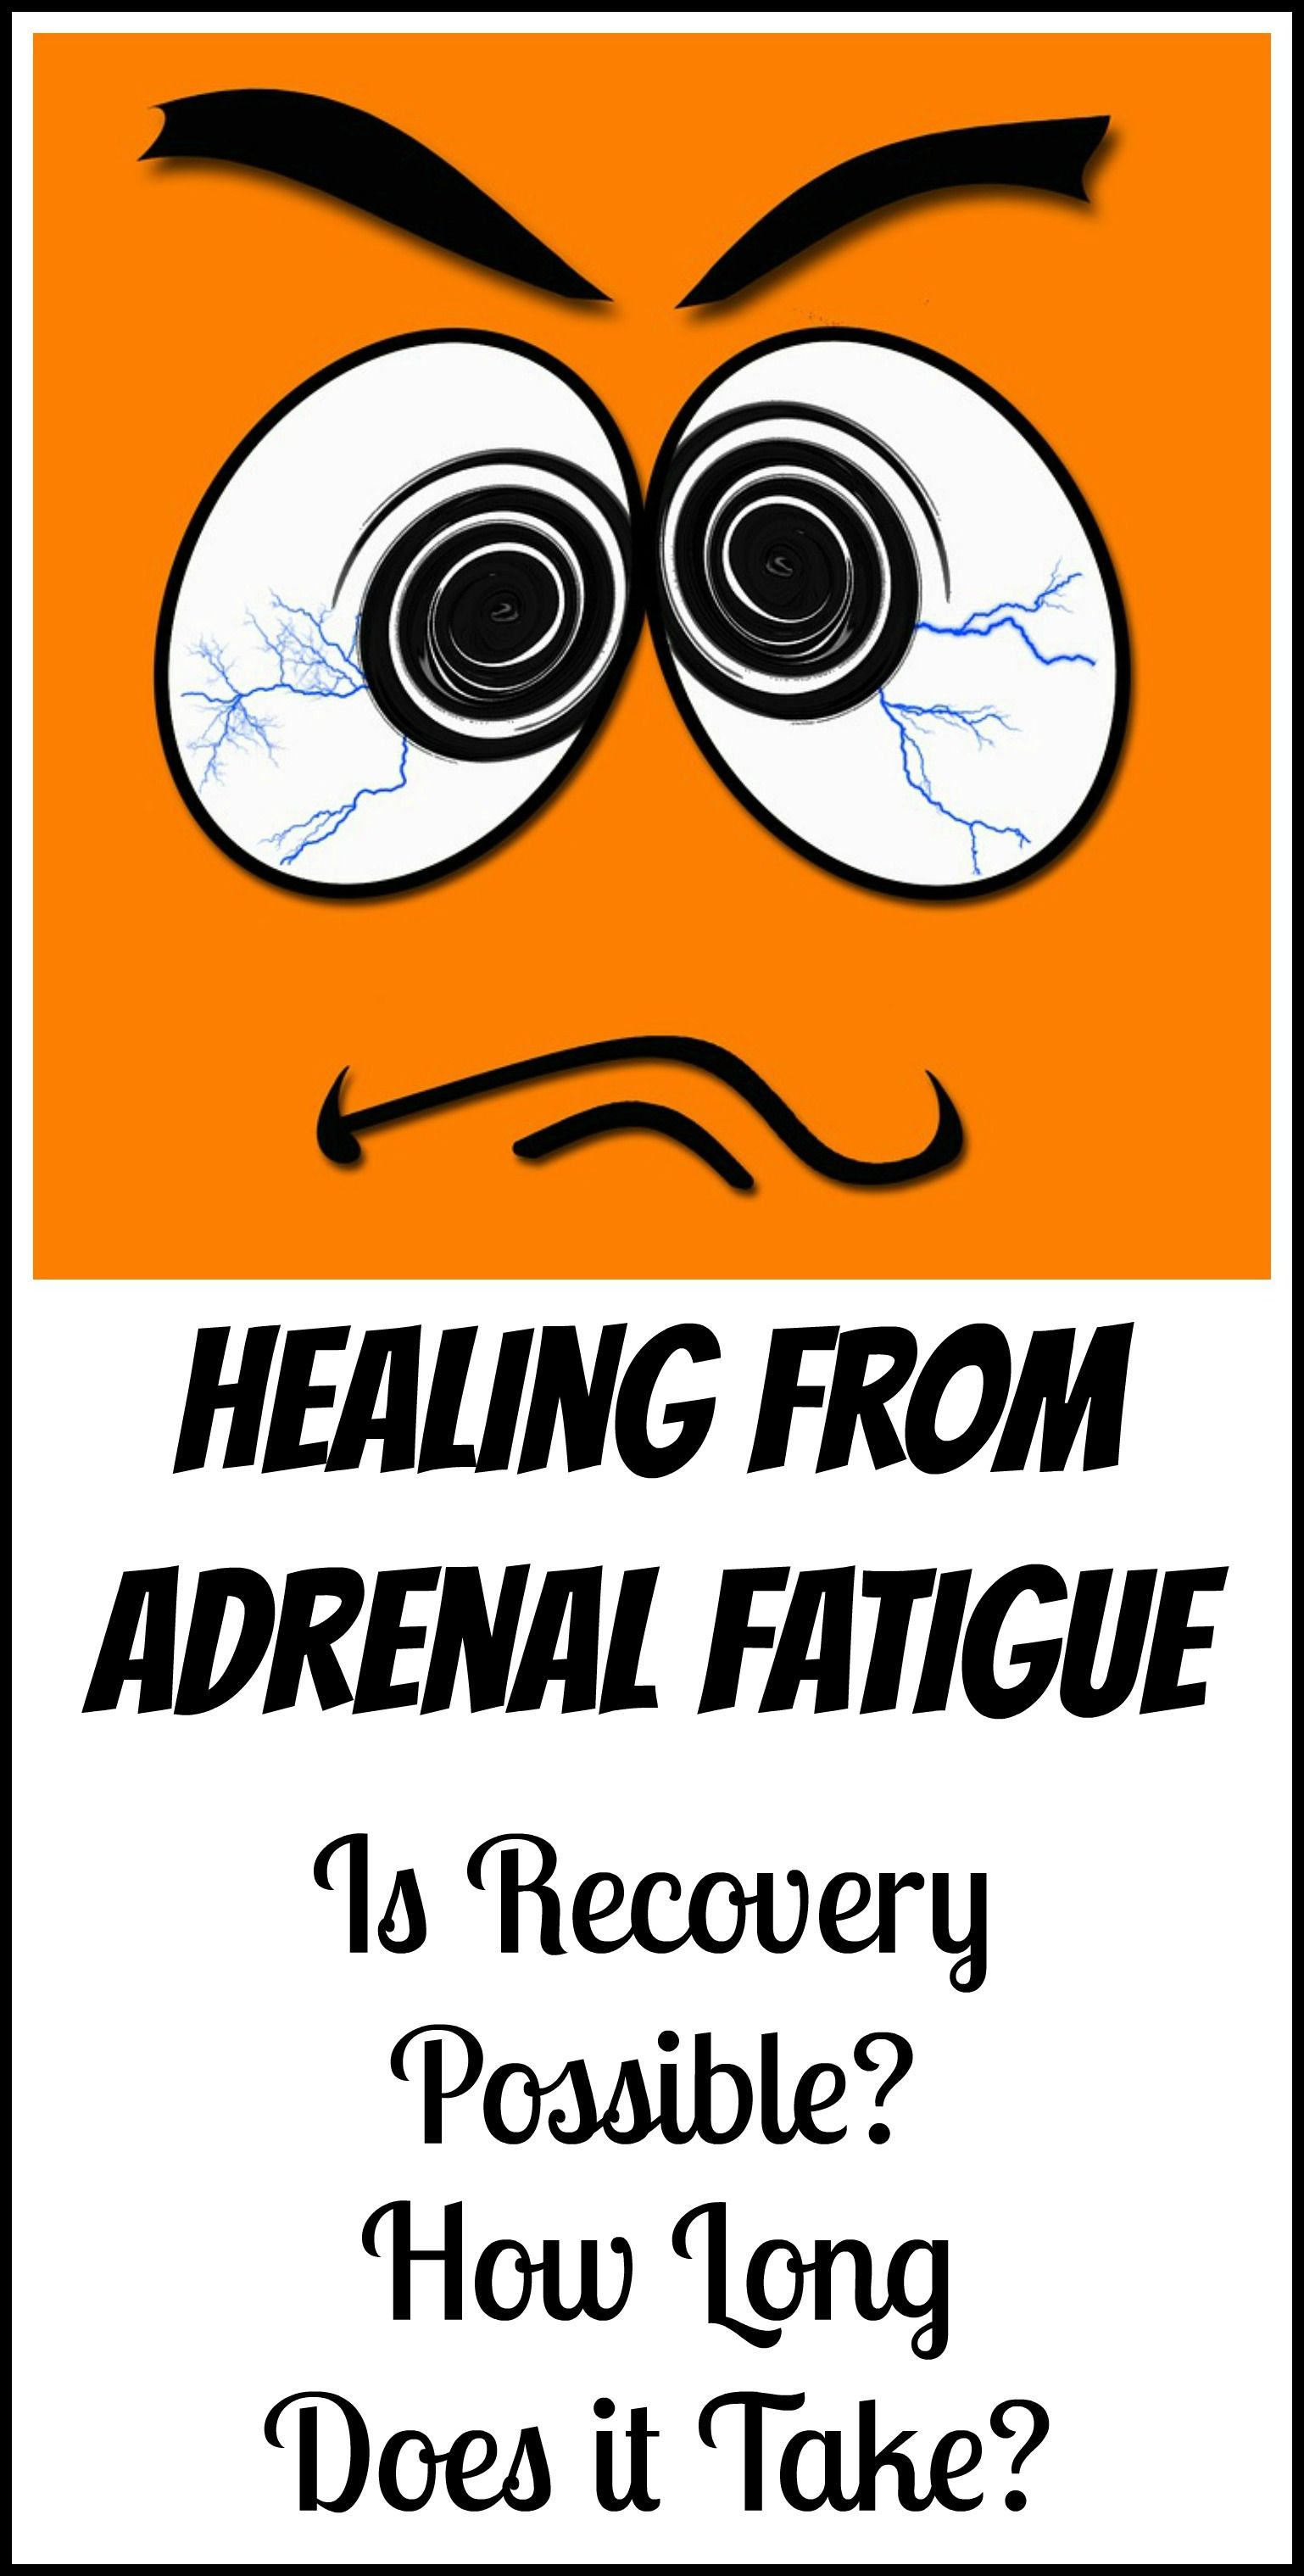 How long does it take to heal adrenal fatigue adrenal